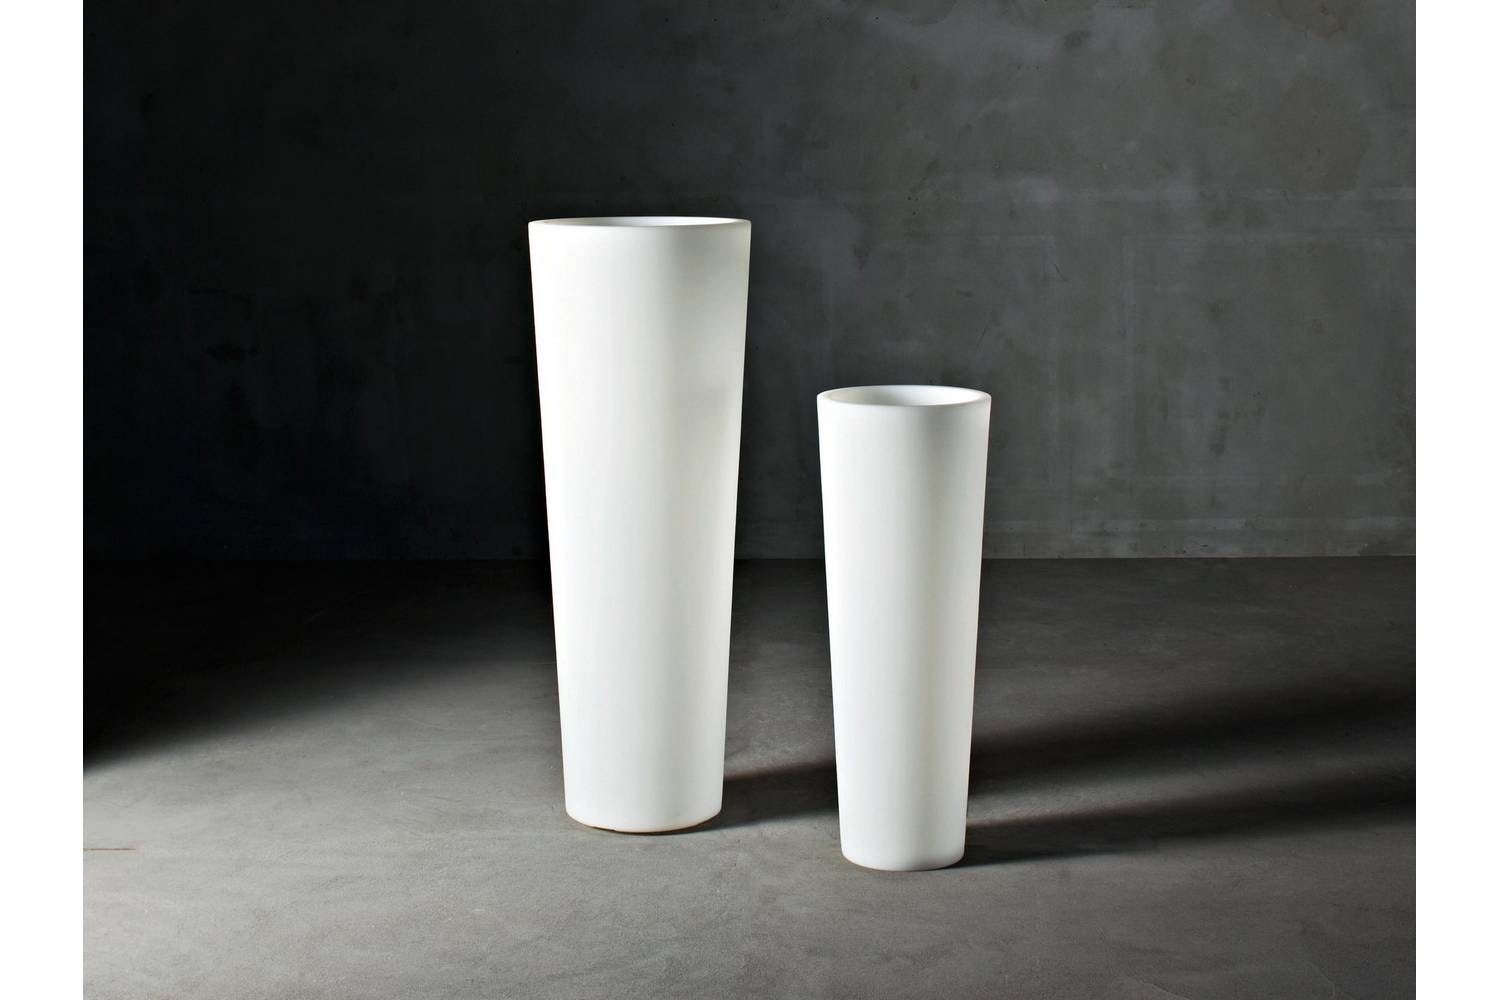 New Pot Maxi by Paolo Rizzatto for Serralunga